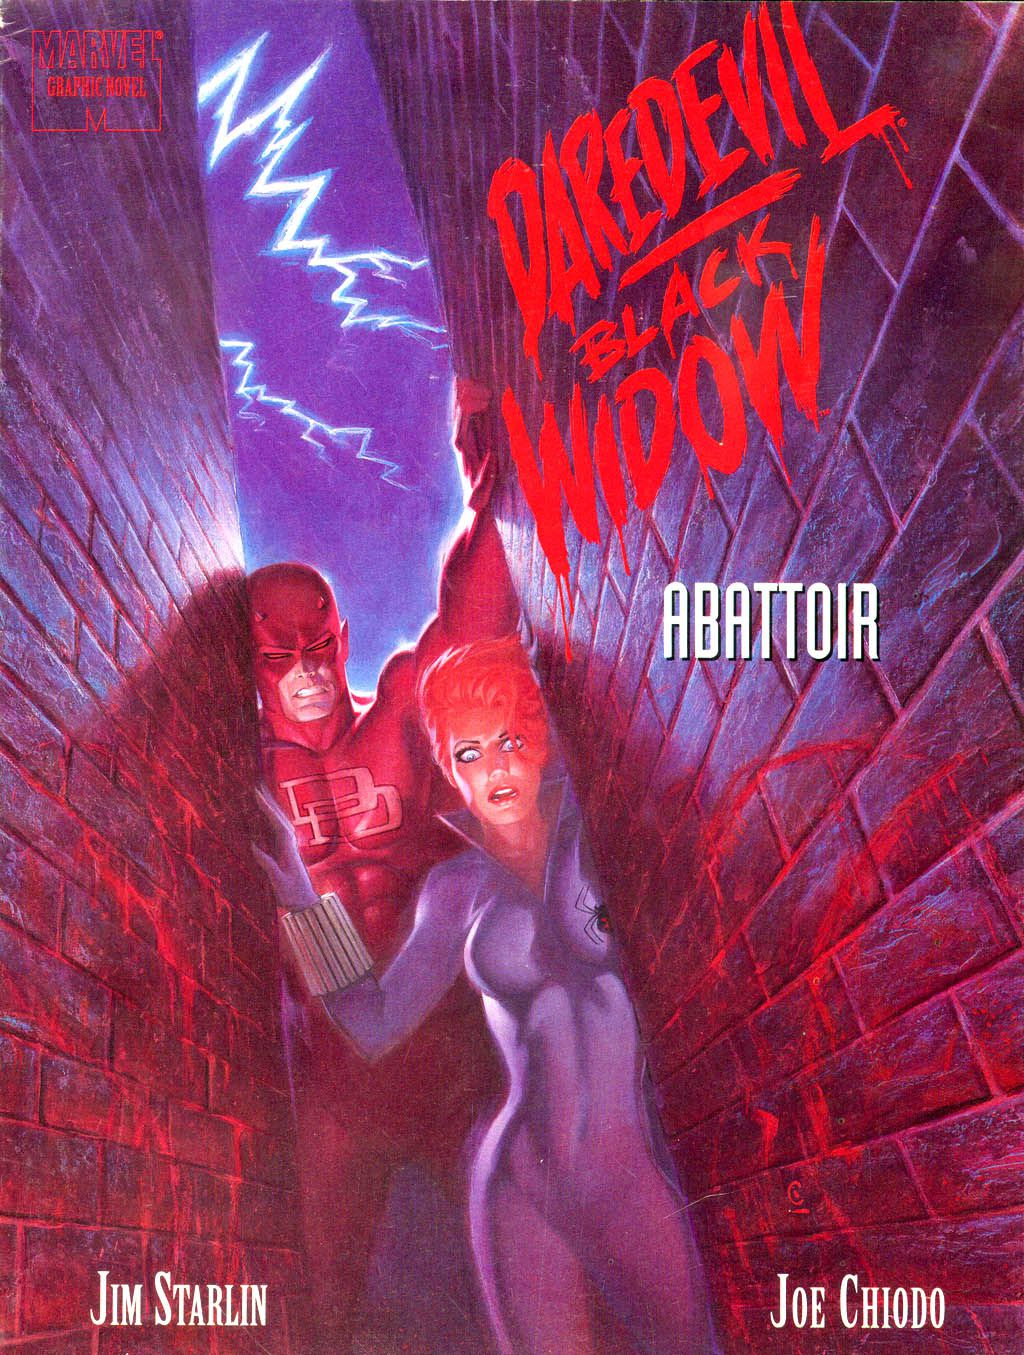 Daredevil_Black_Widow_Abattoir